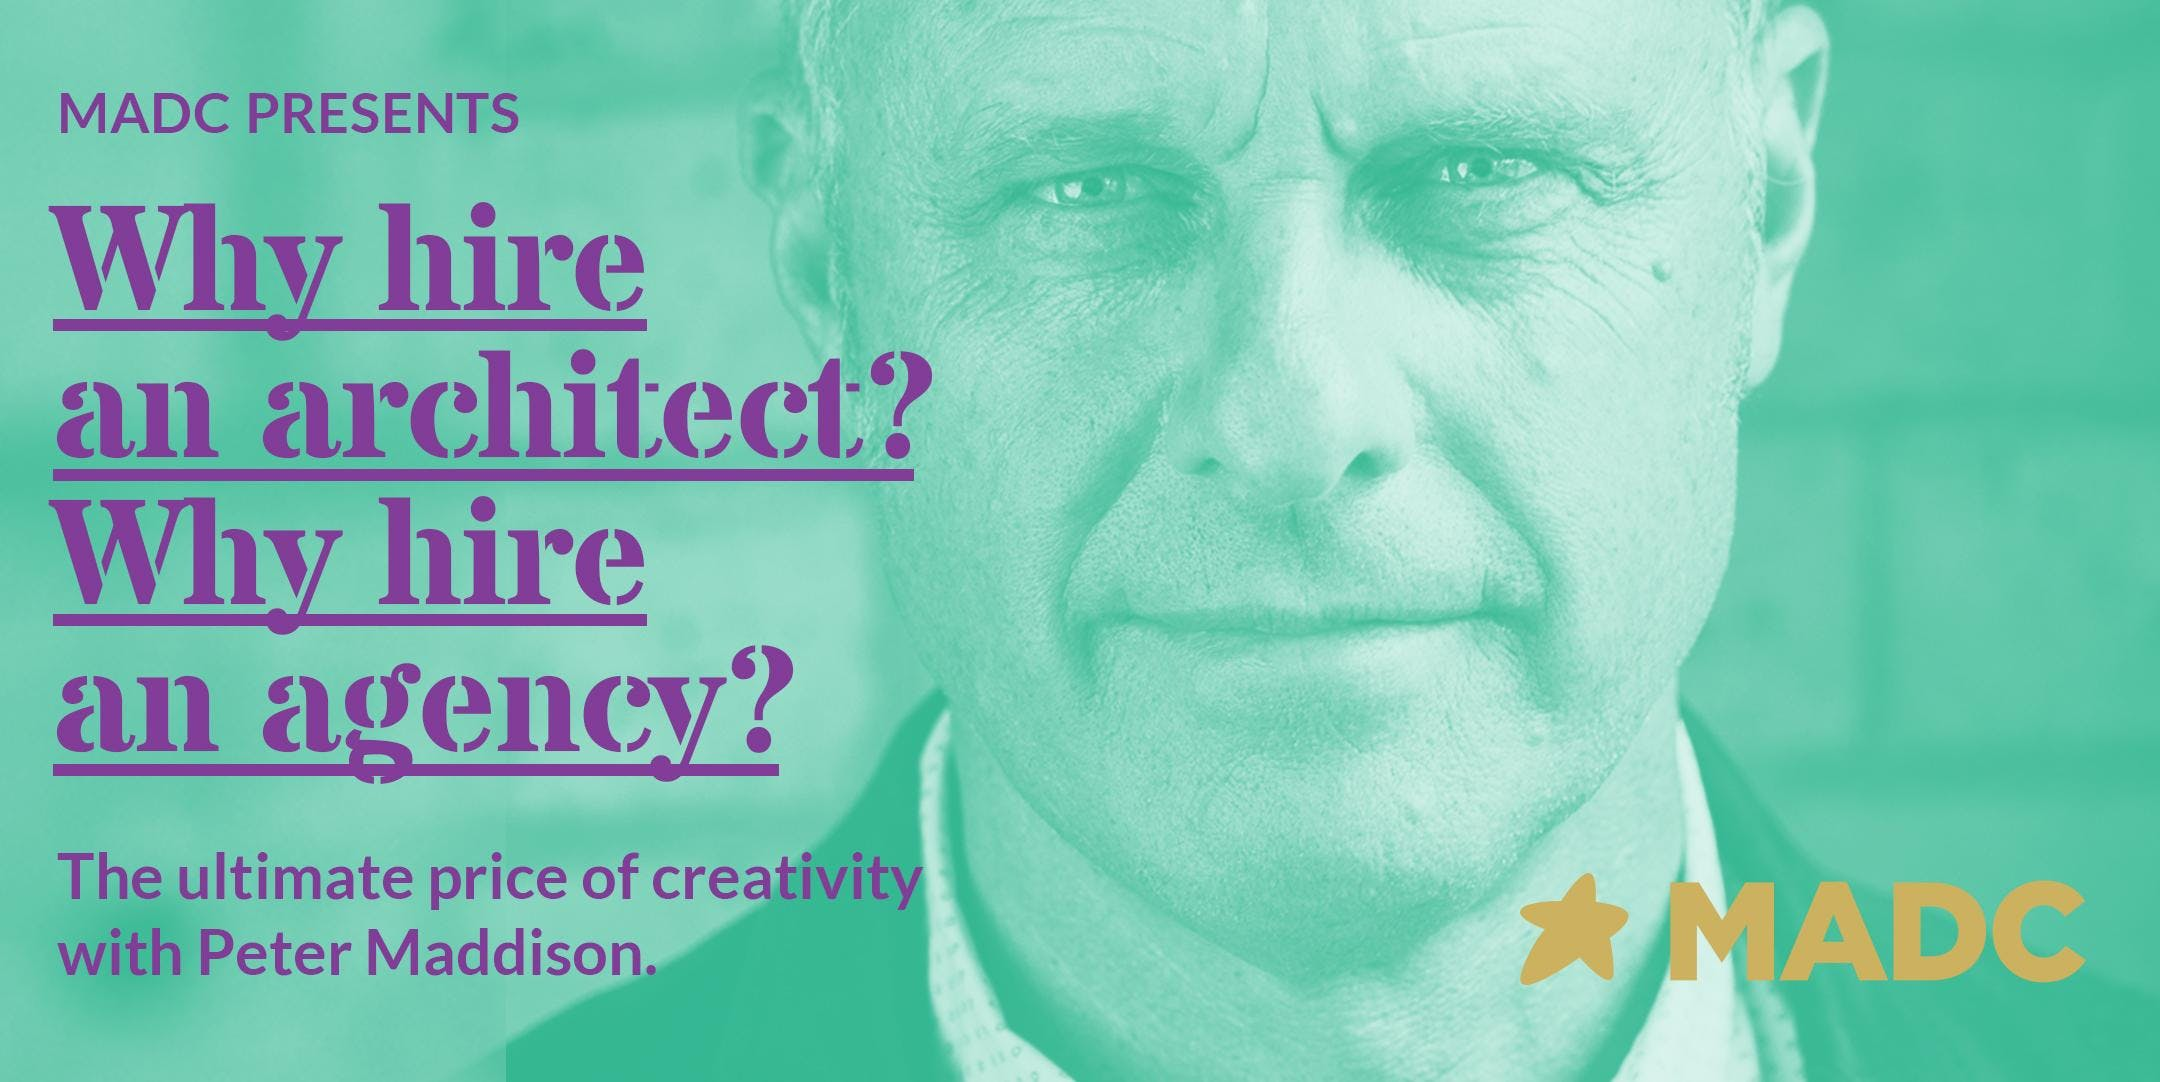 Why hire an architect? Why hire an agency? – with Peter Maddison